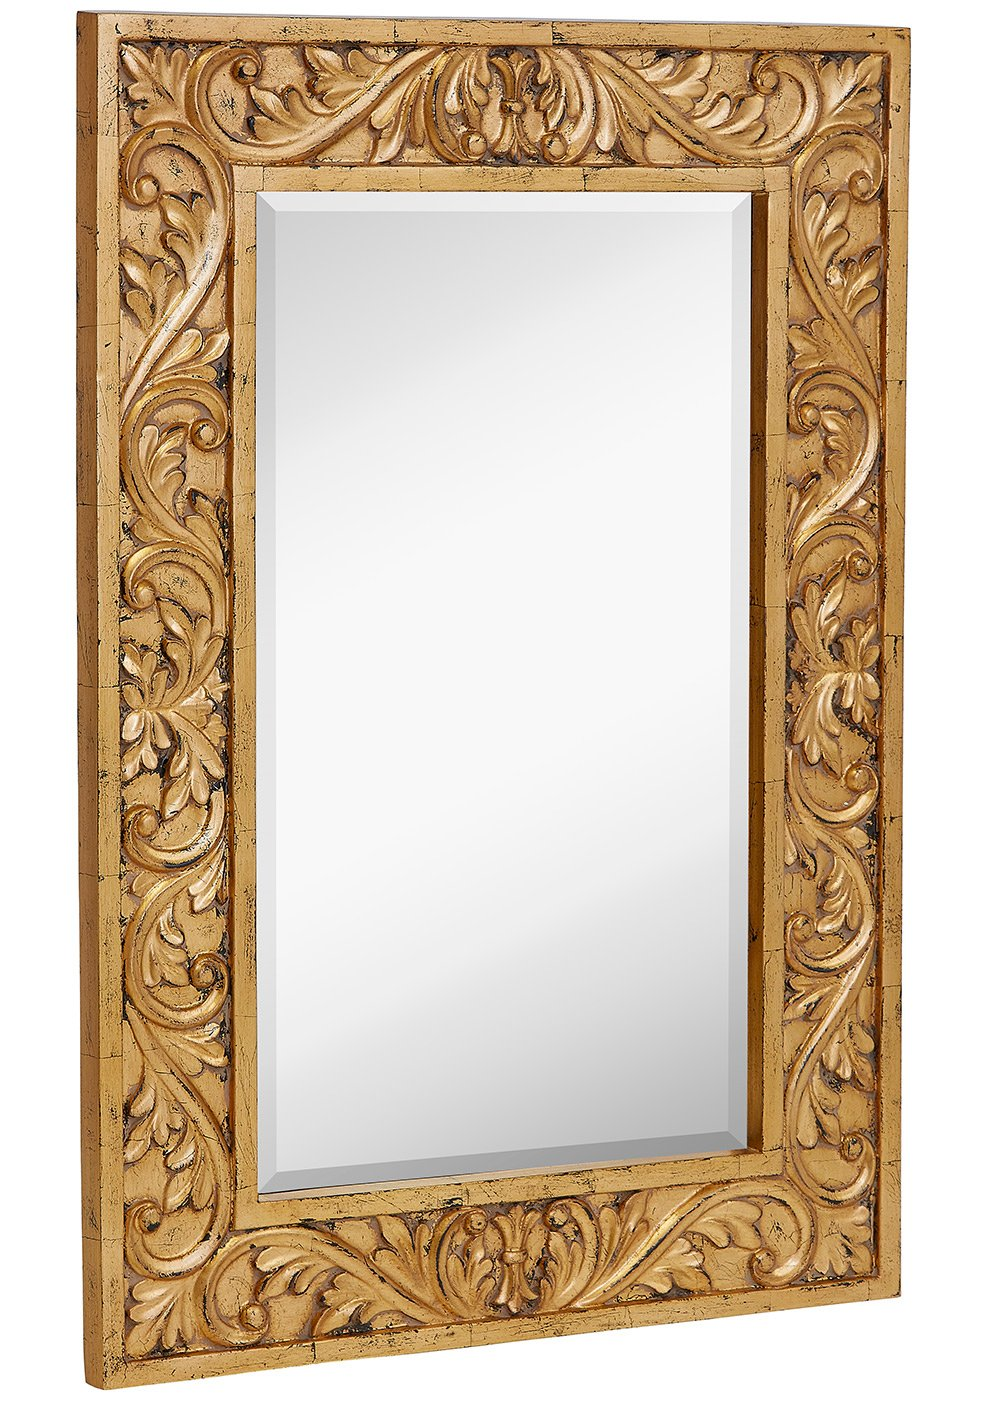 Large Gold Antique Inlay Baroque Styled Framed Mirror | Aged Elegant Rectangular Glass Wall Mirror | Vanity, Bedroom, or Bathroom | Hangs Horizontal or Vertical | 24'' x 35''